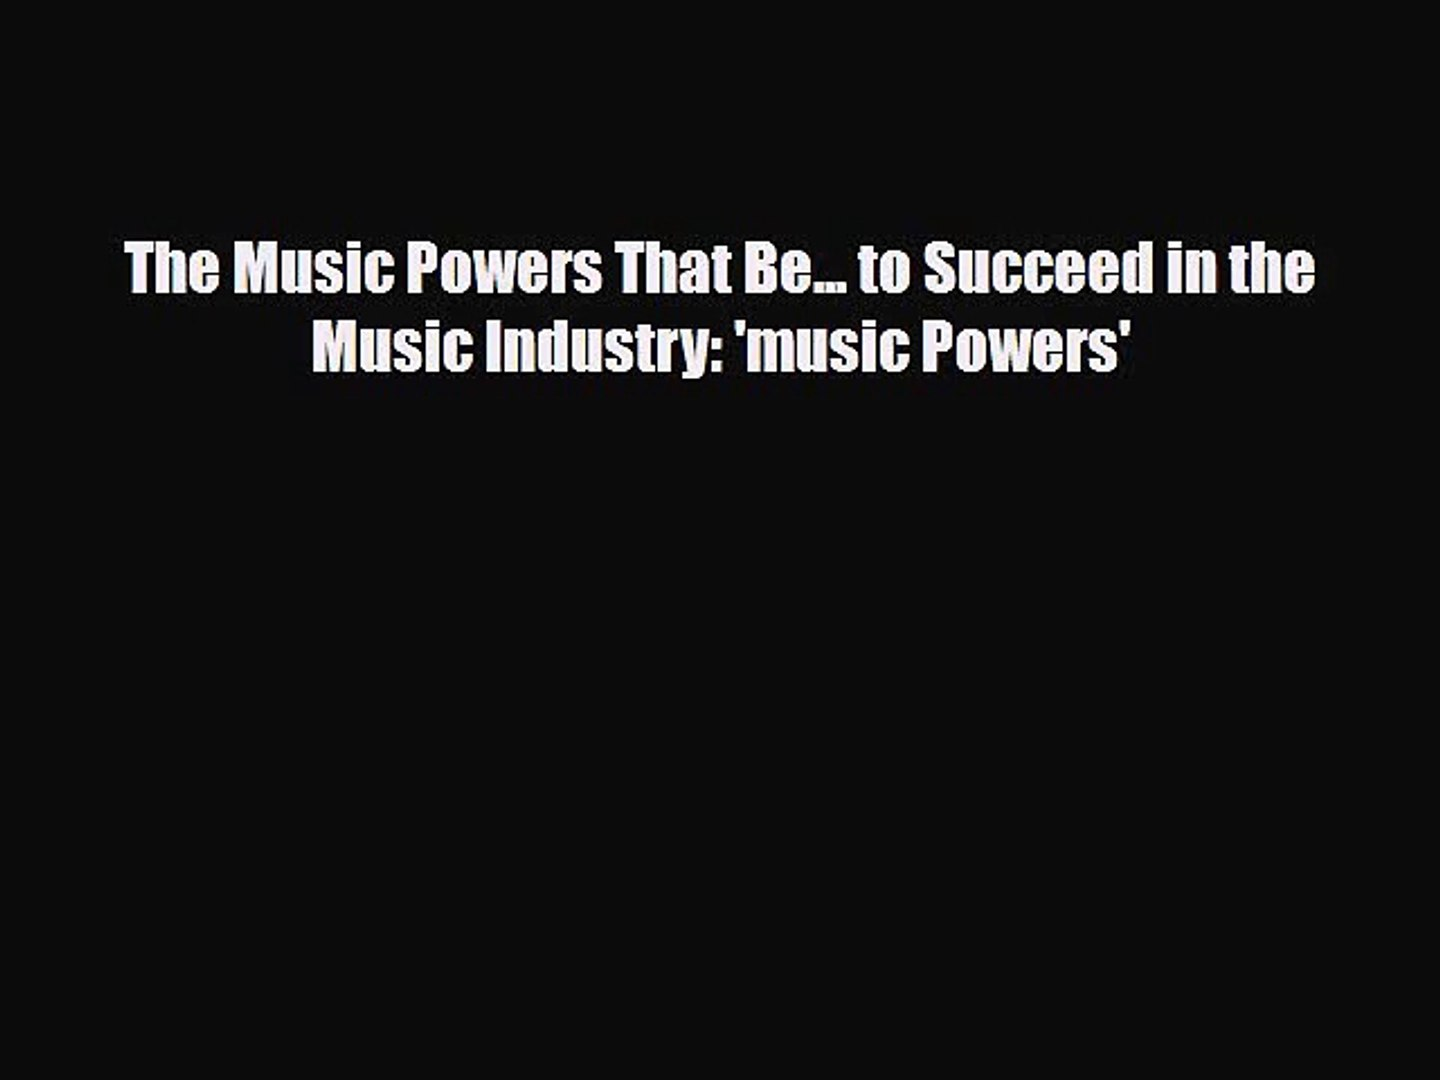 [PDF Download] The Music Powers That Be... to Succeed in the Music Industry: 'music Powers'